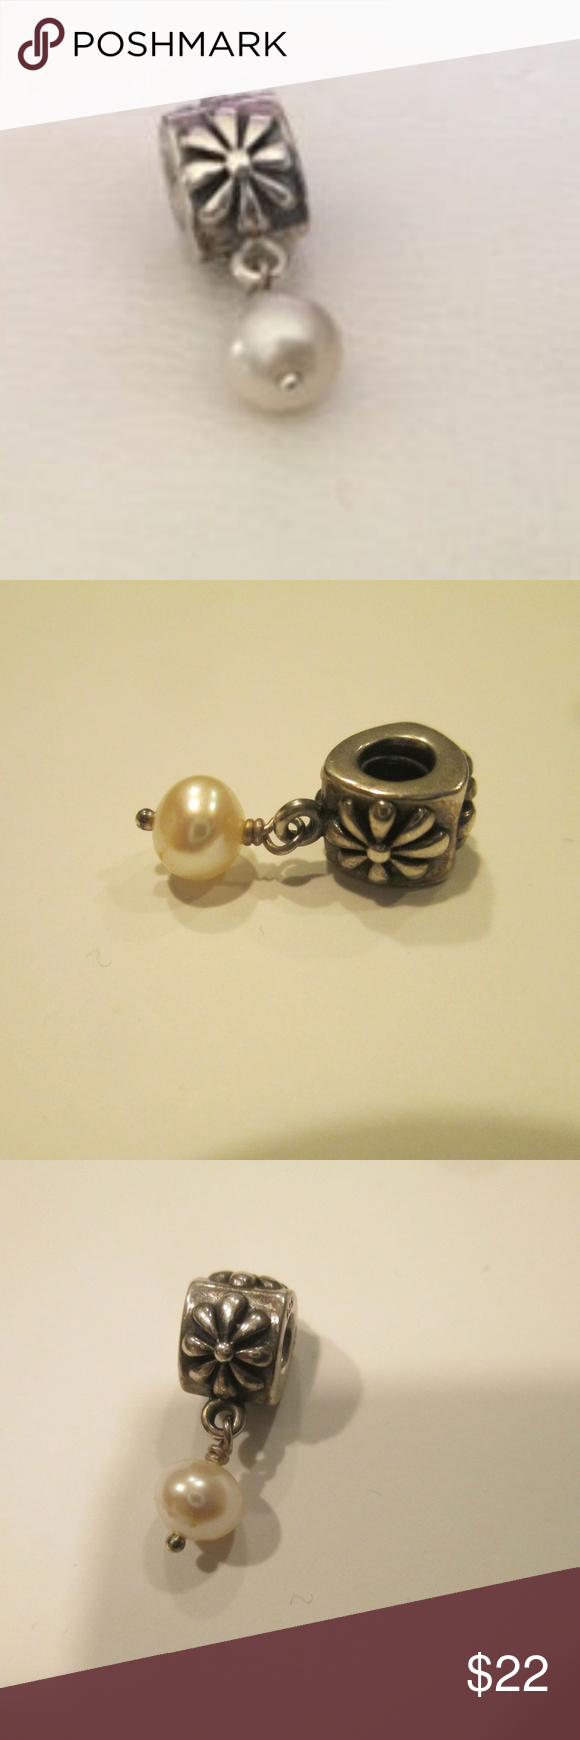 ebfd3af74 PANDORA Silver SIMPLE FLOWER Pearl Dangle Authentic PANDORA Silver SIMPLE  FLOWER Pearl Dangle Charm 790535P RETIRED 925 ALE love this dangle pandora  Jewelry ...